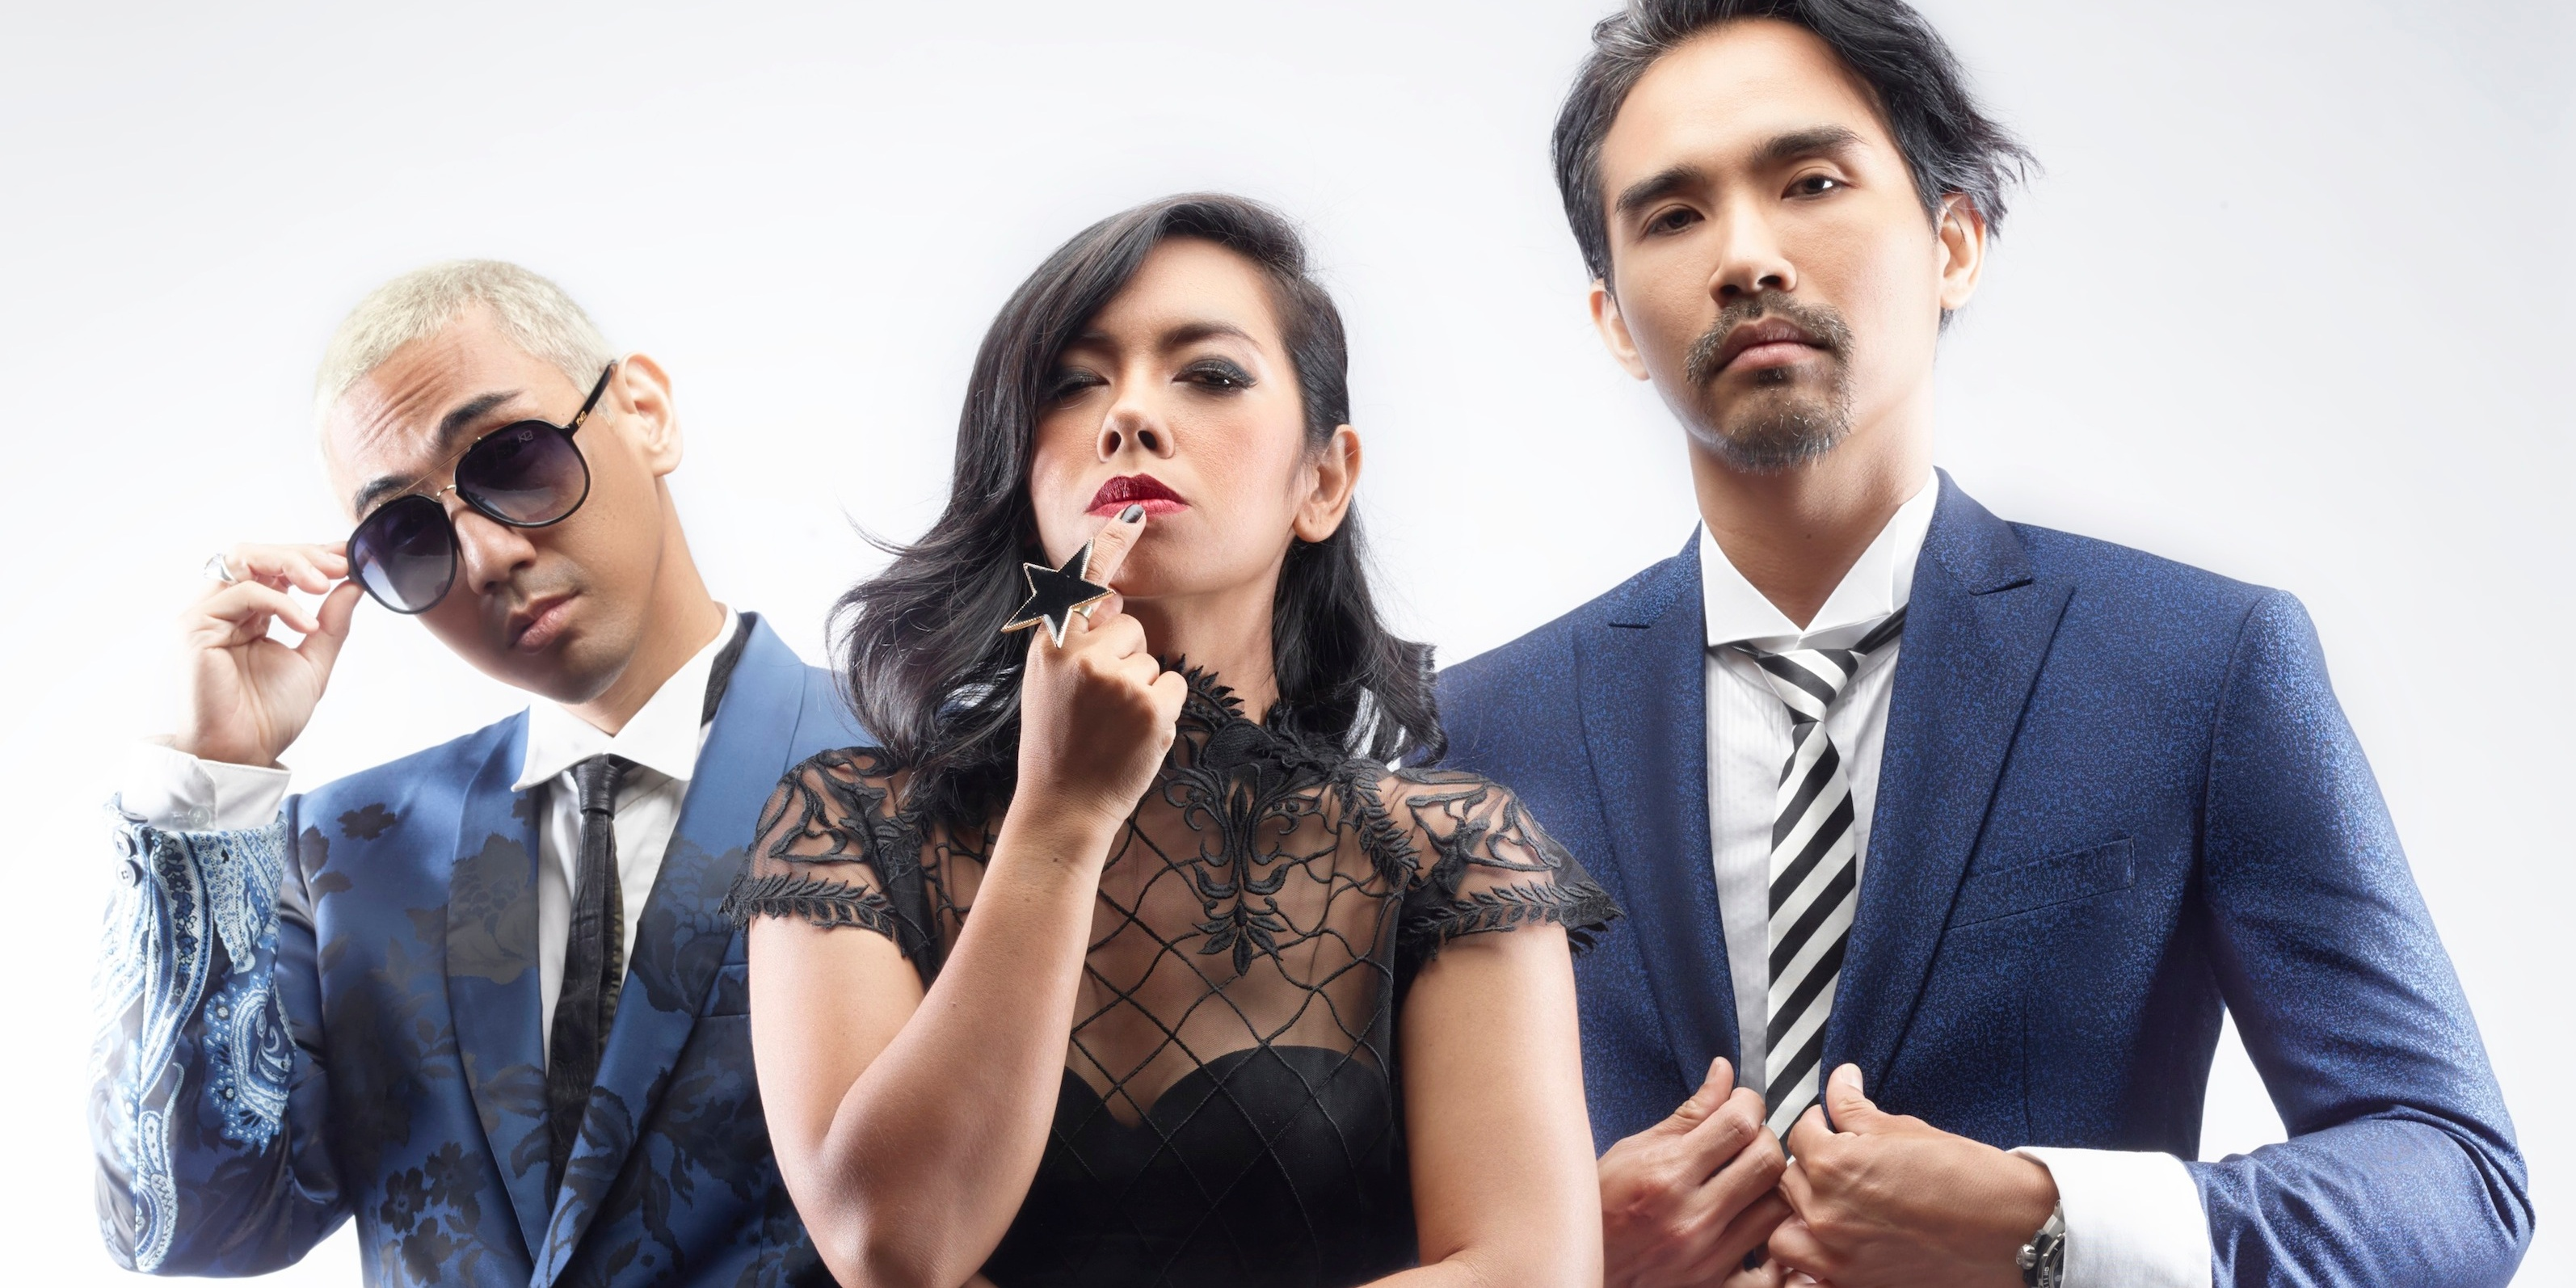 Soul ID to release new album titled Heartwork